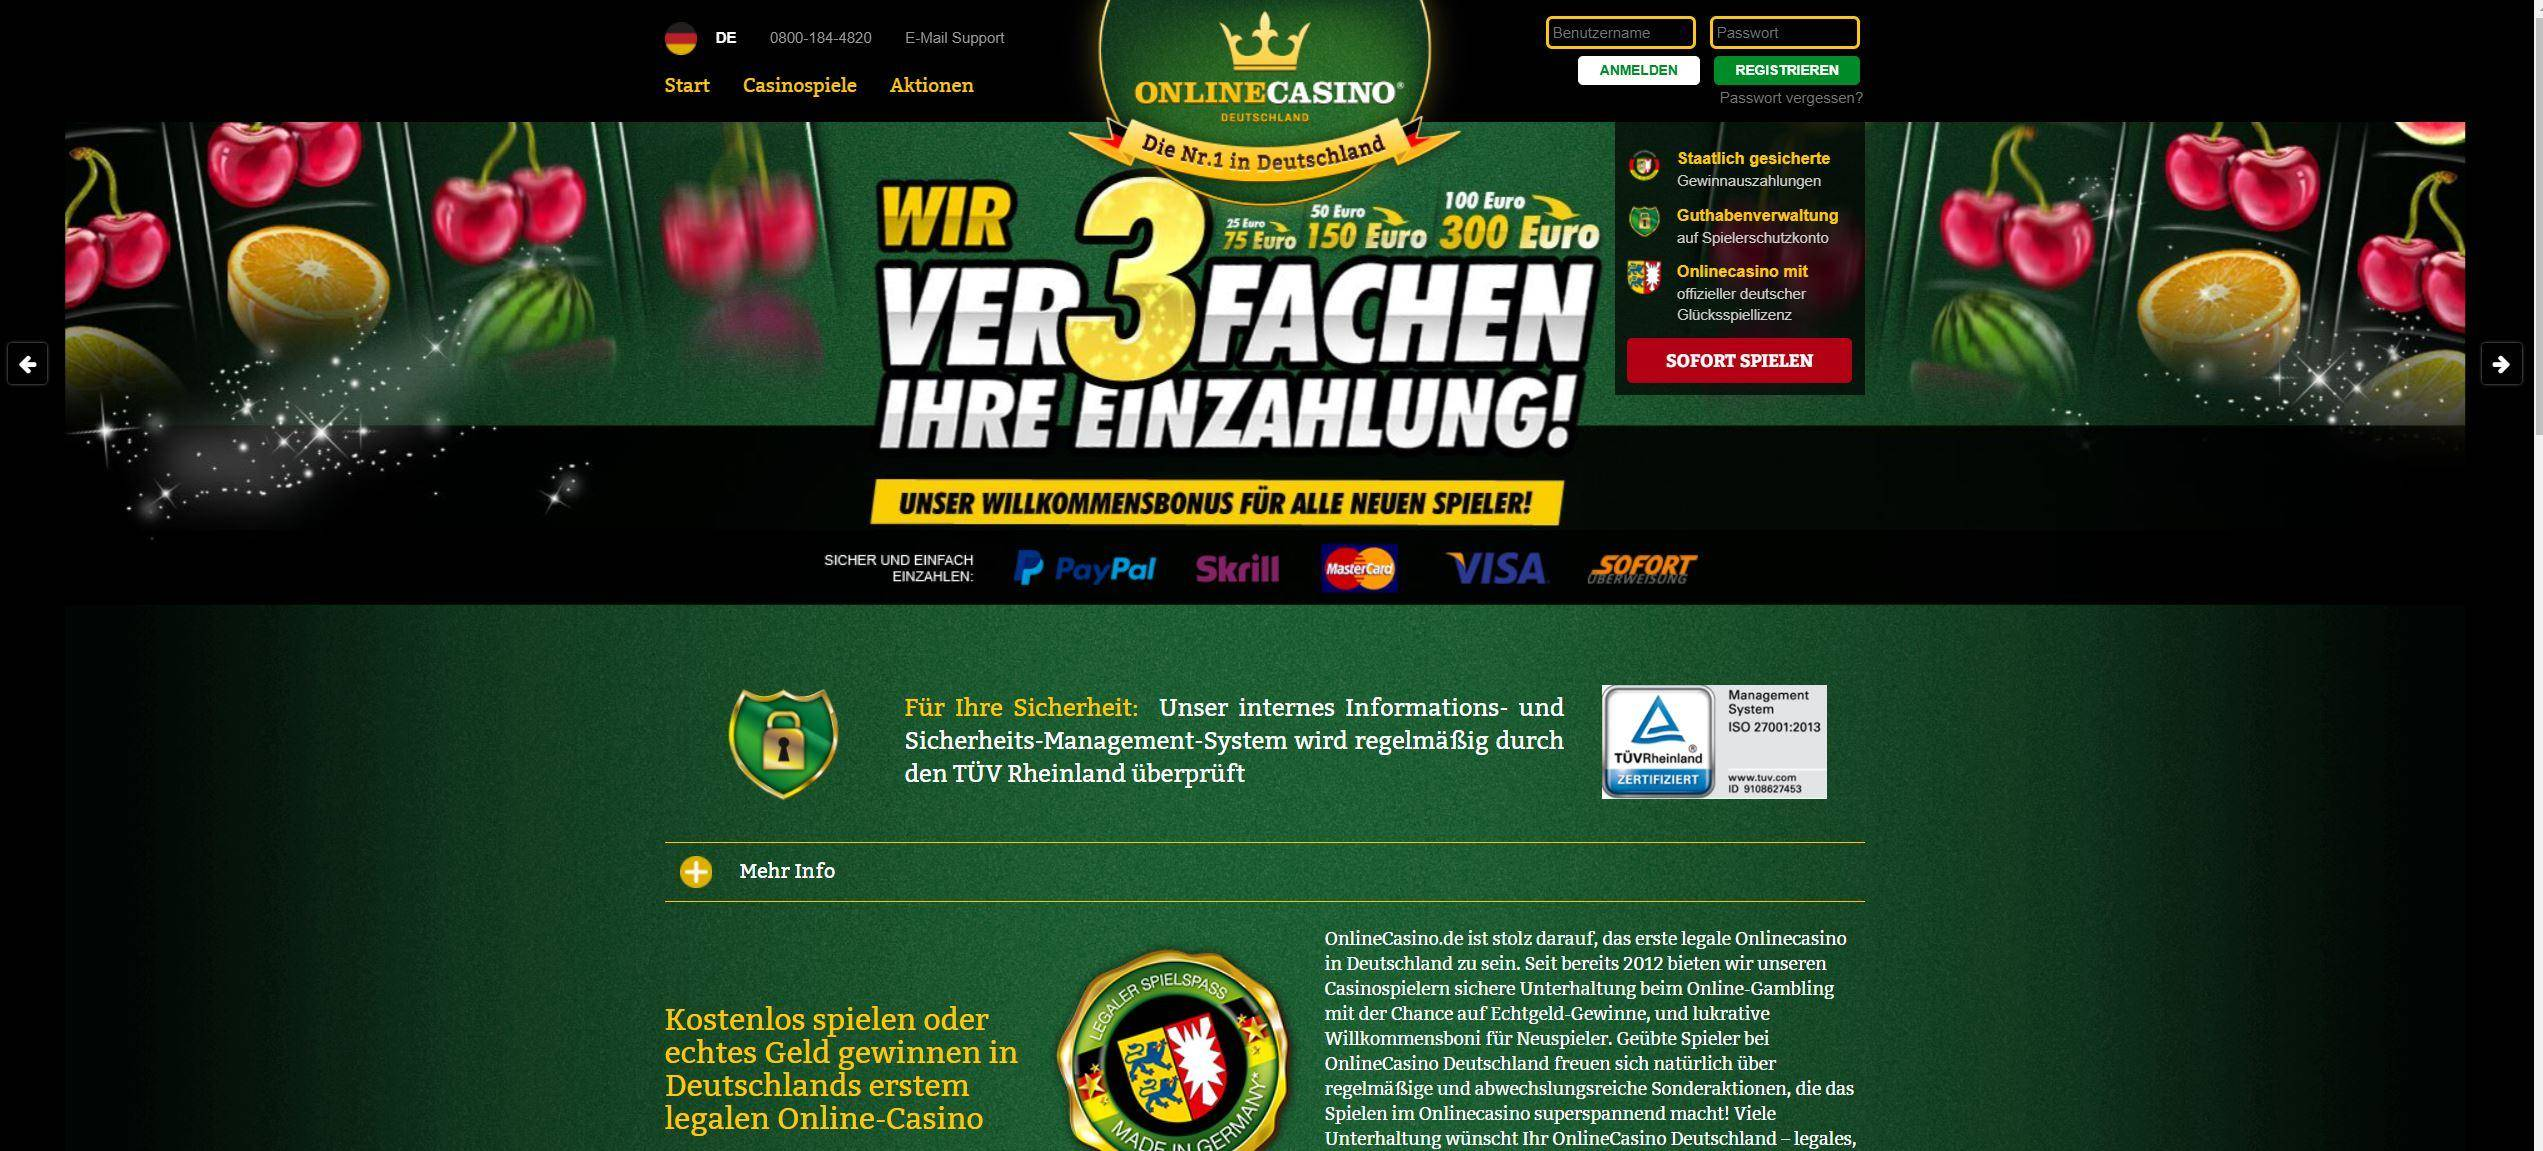 Deutsche online Casinos -958765